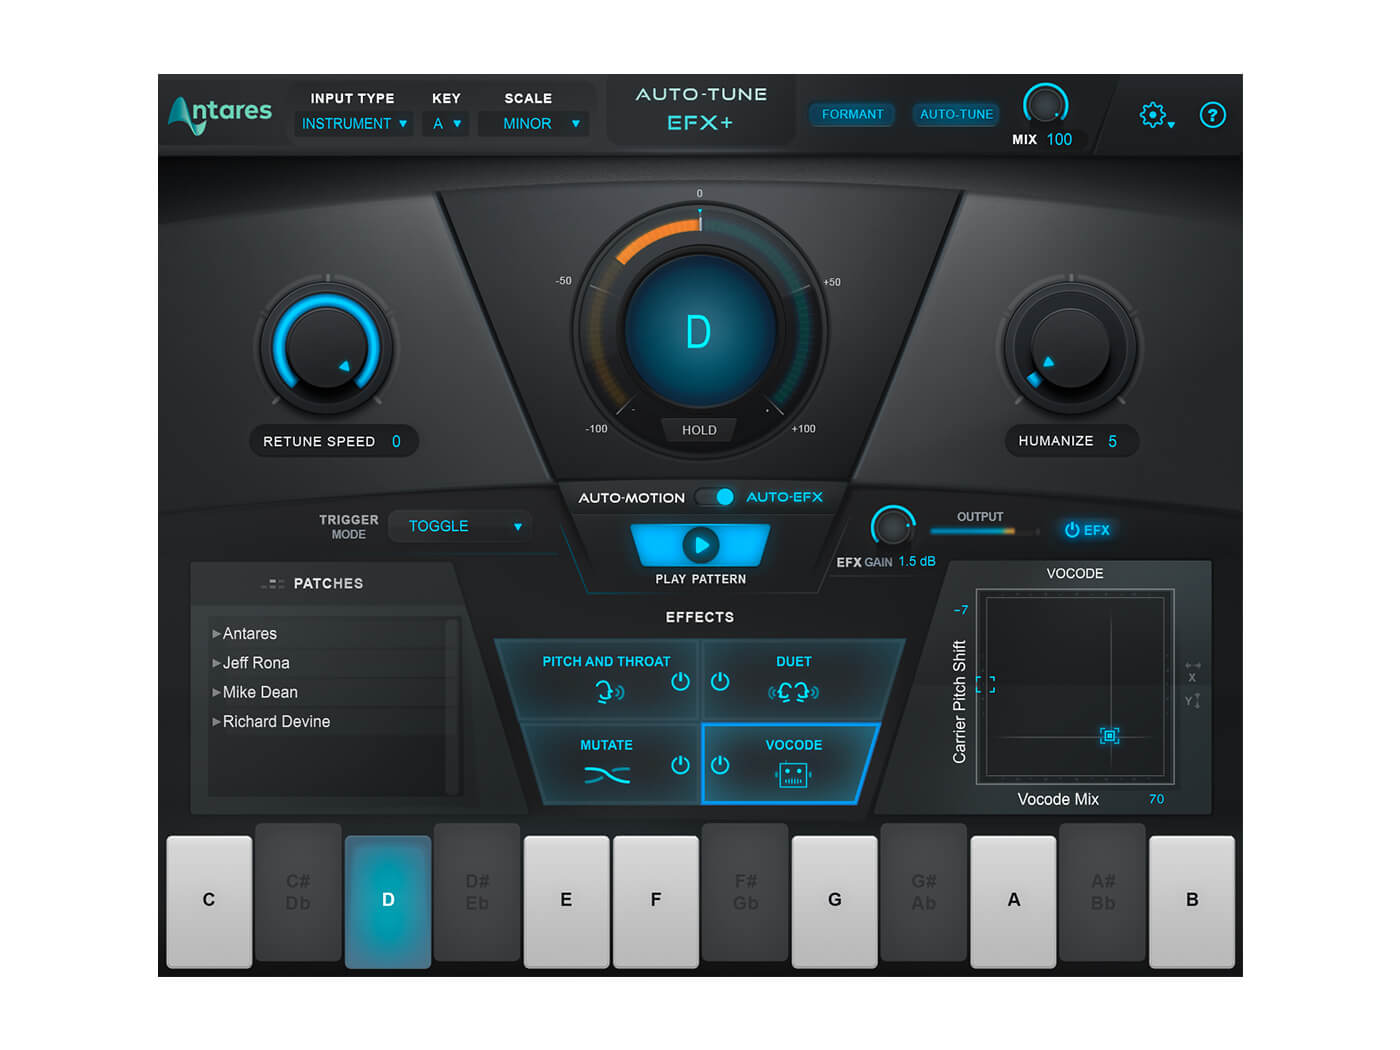 Make sweeter vocals with Antares Auto-Tune EFX+